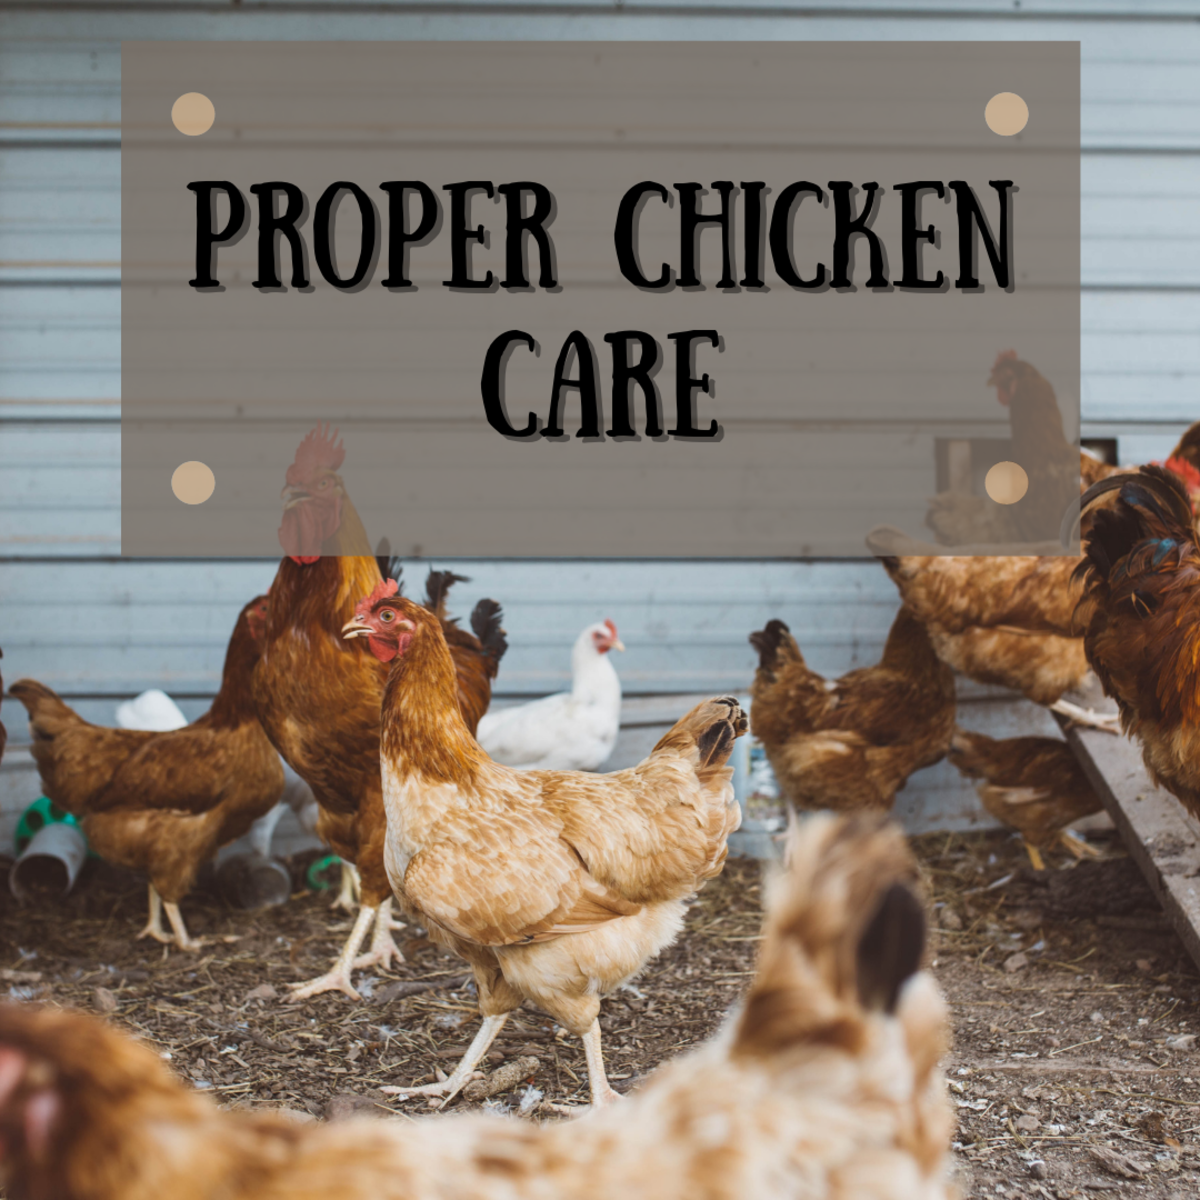 Learn how to care for chickens by building a safe chicken run and providing the correct plants for food and protection.